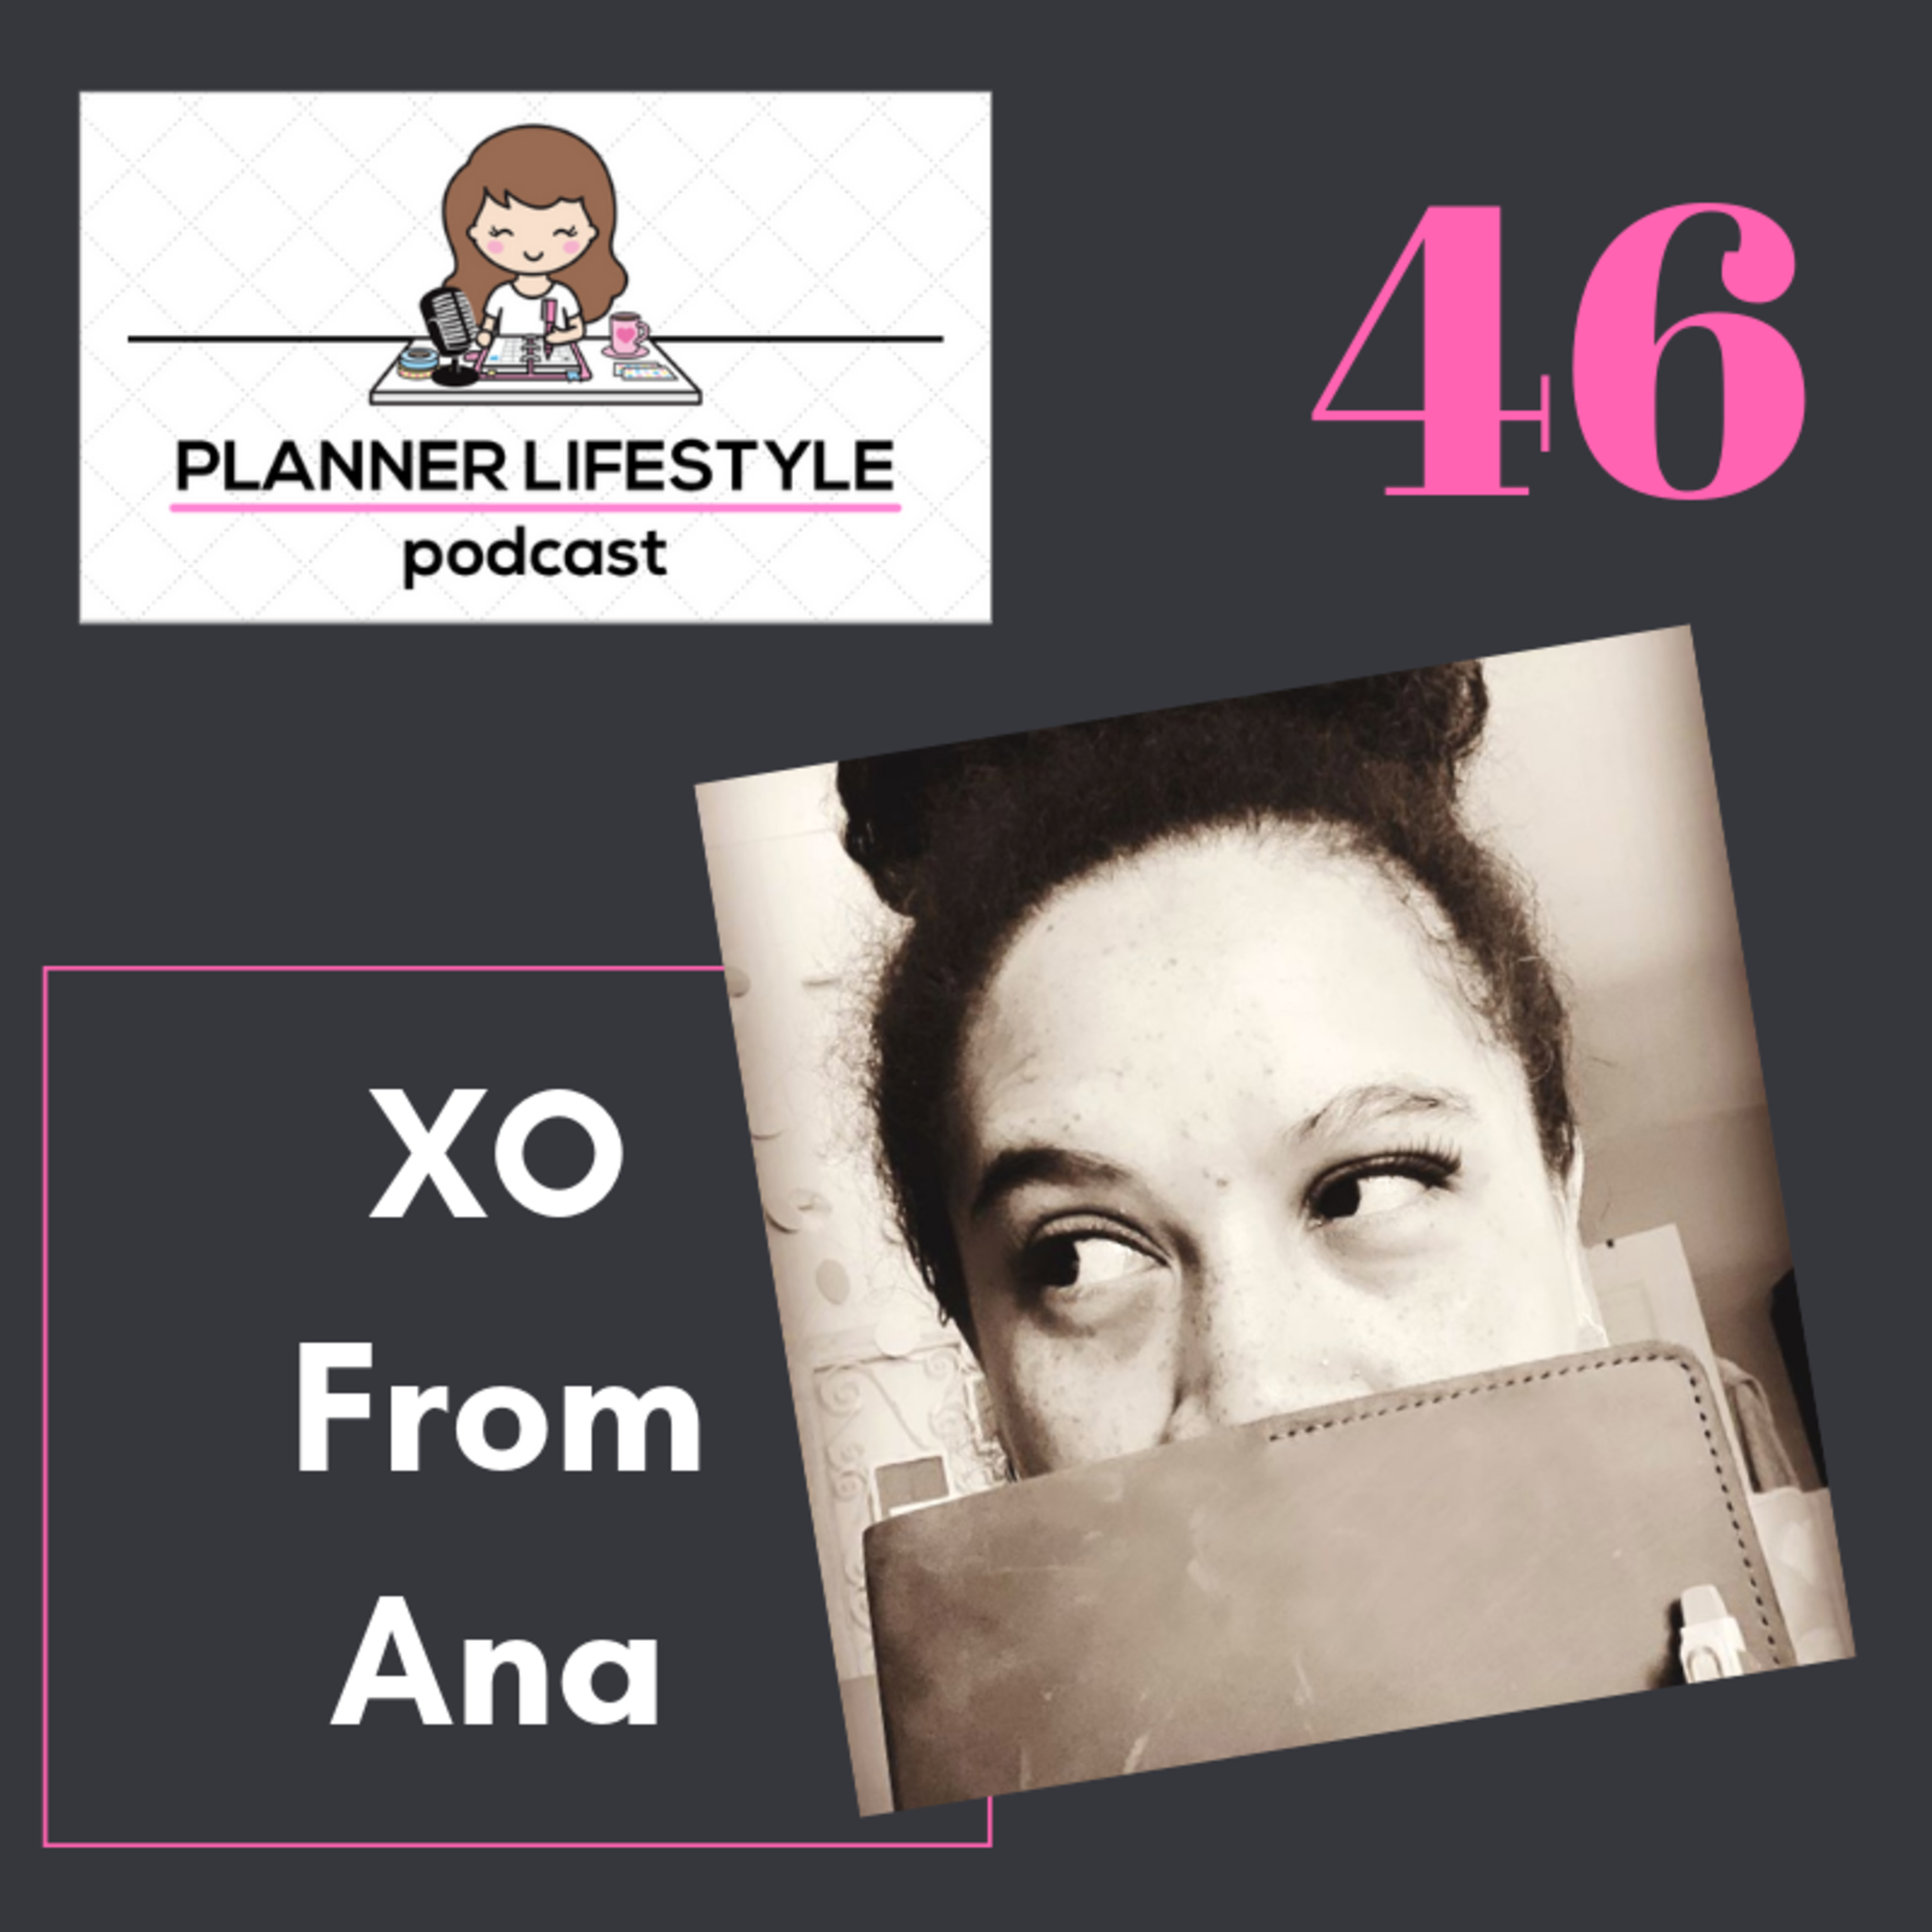 Planner Lifestyle Podcast | Podbay